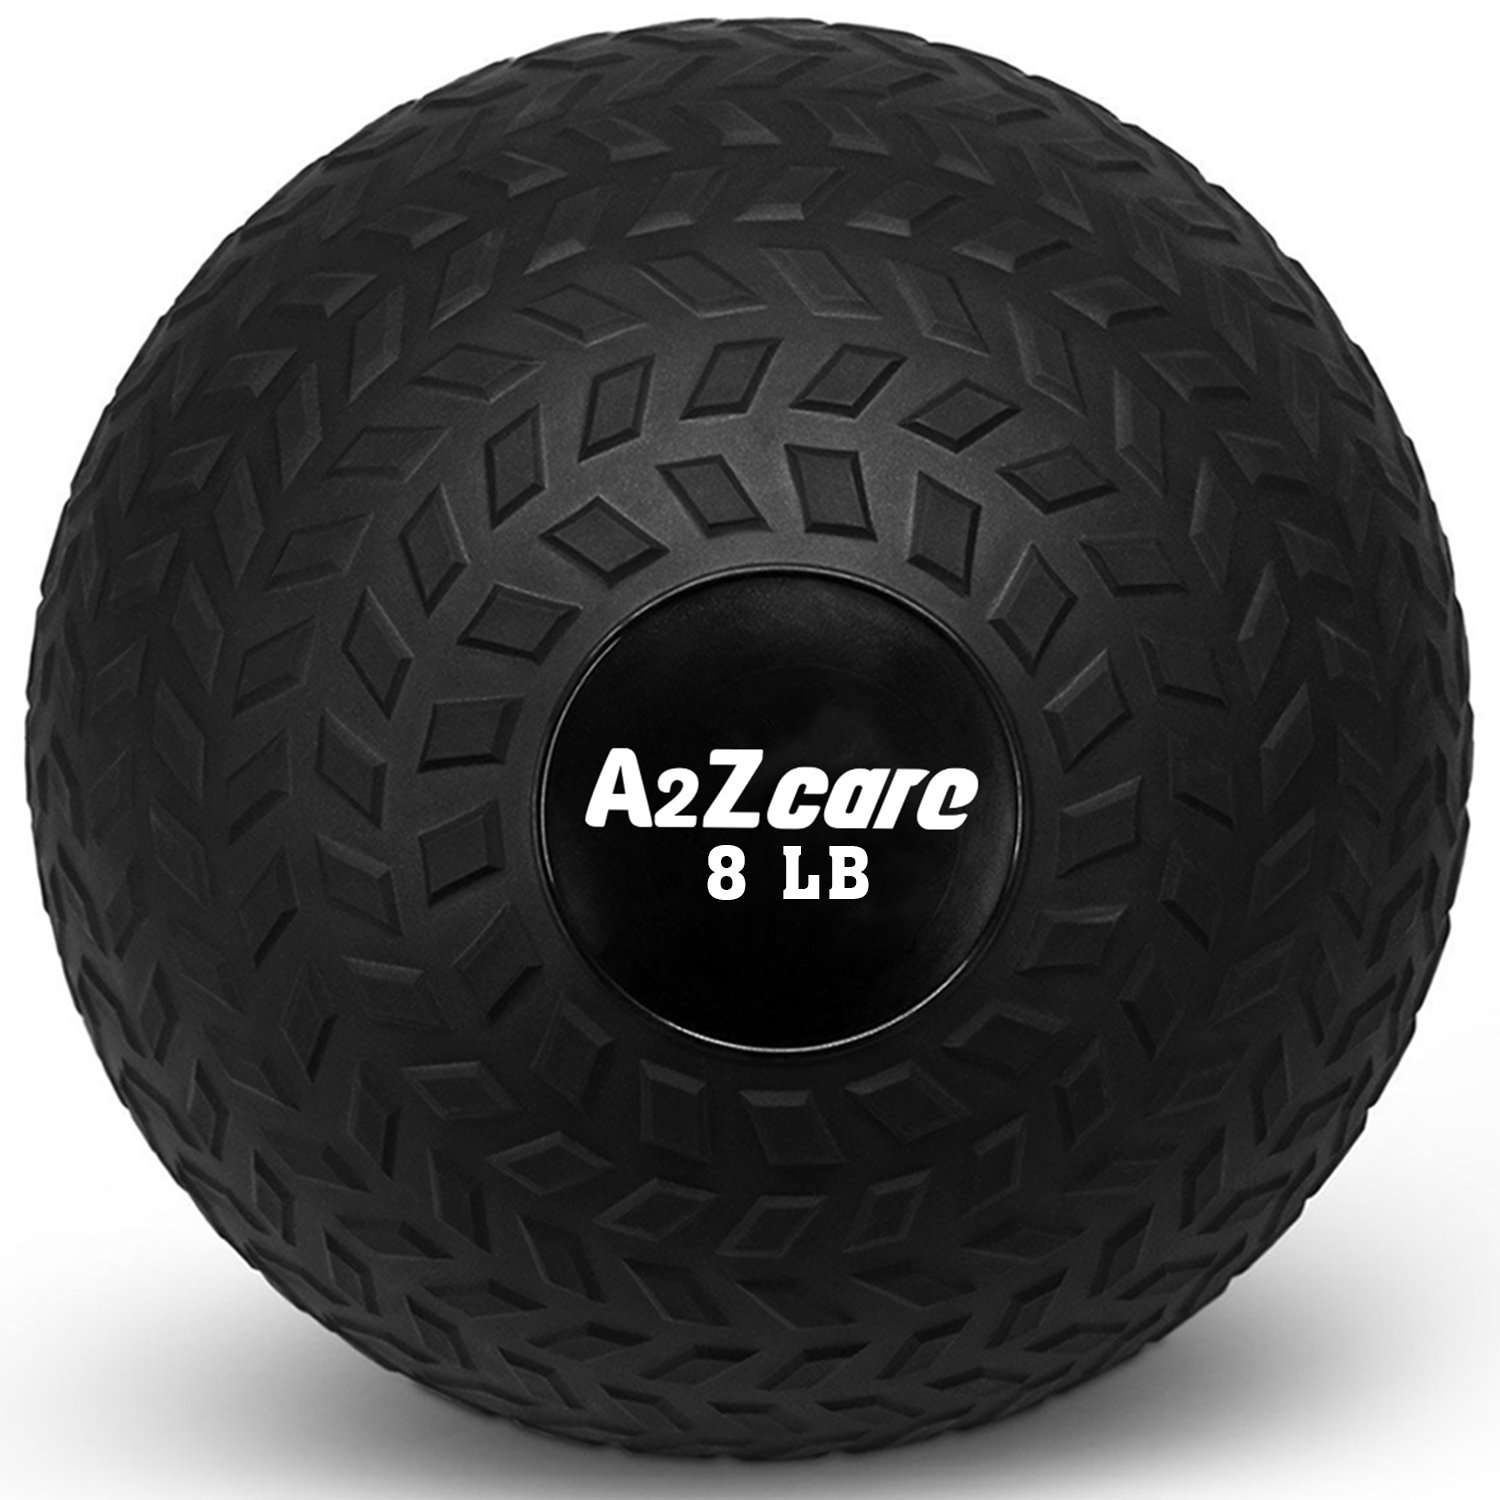 A2ZCARE Slam Ball 30lbs, 25lbs, 20lbs, 15lbs, 10lbs, 8lbs - Medicine Ball or Weight Ball - Black (8lbs)